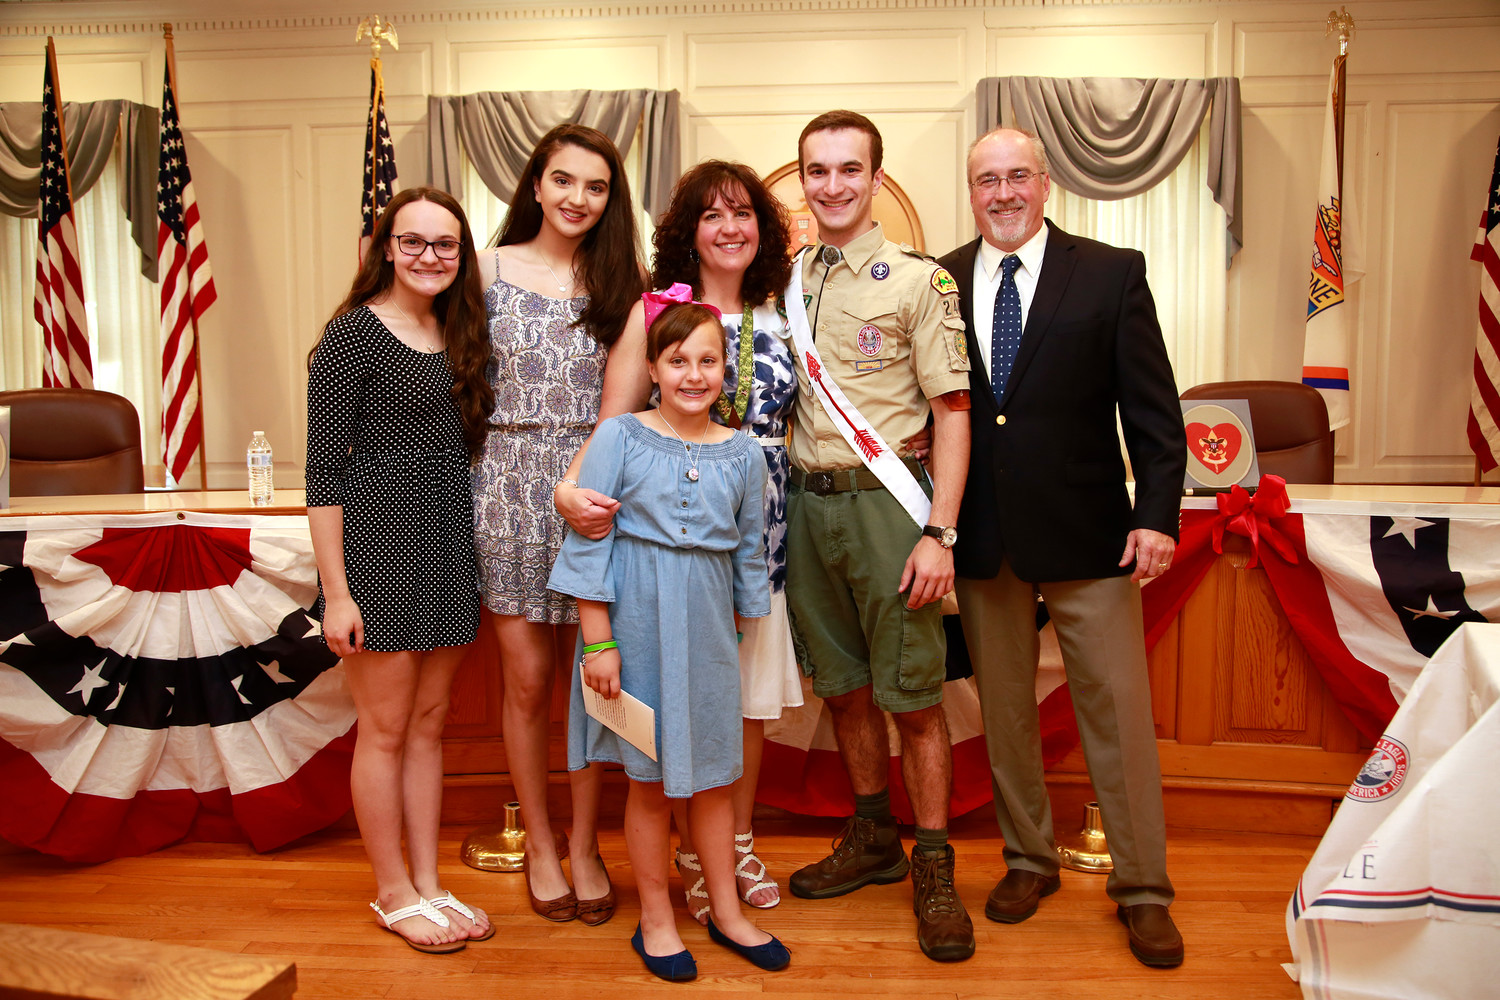 Boy Scout Thomas James Callahan celebrated becoming an Eagle Scout with his family on June 9.